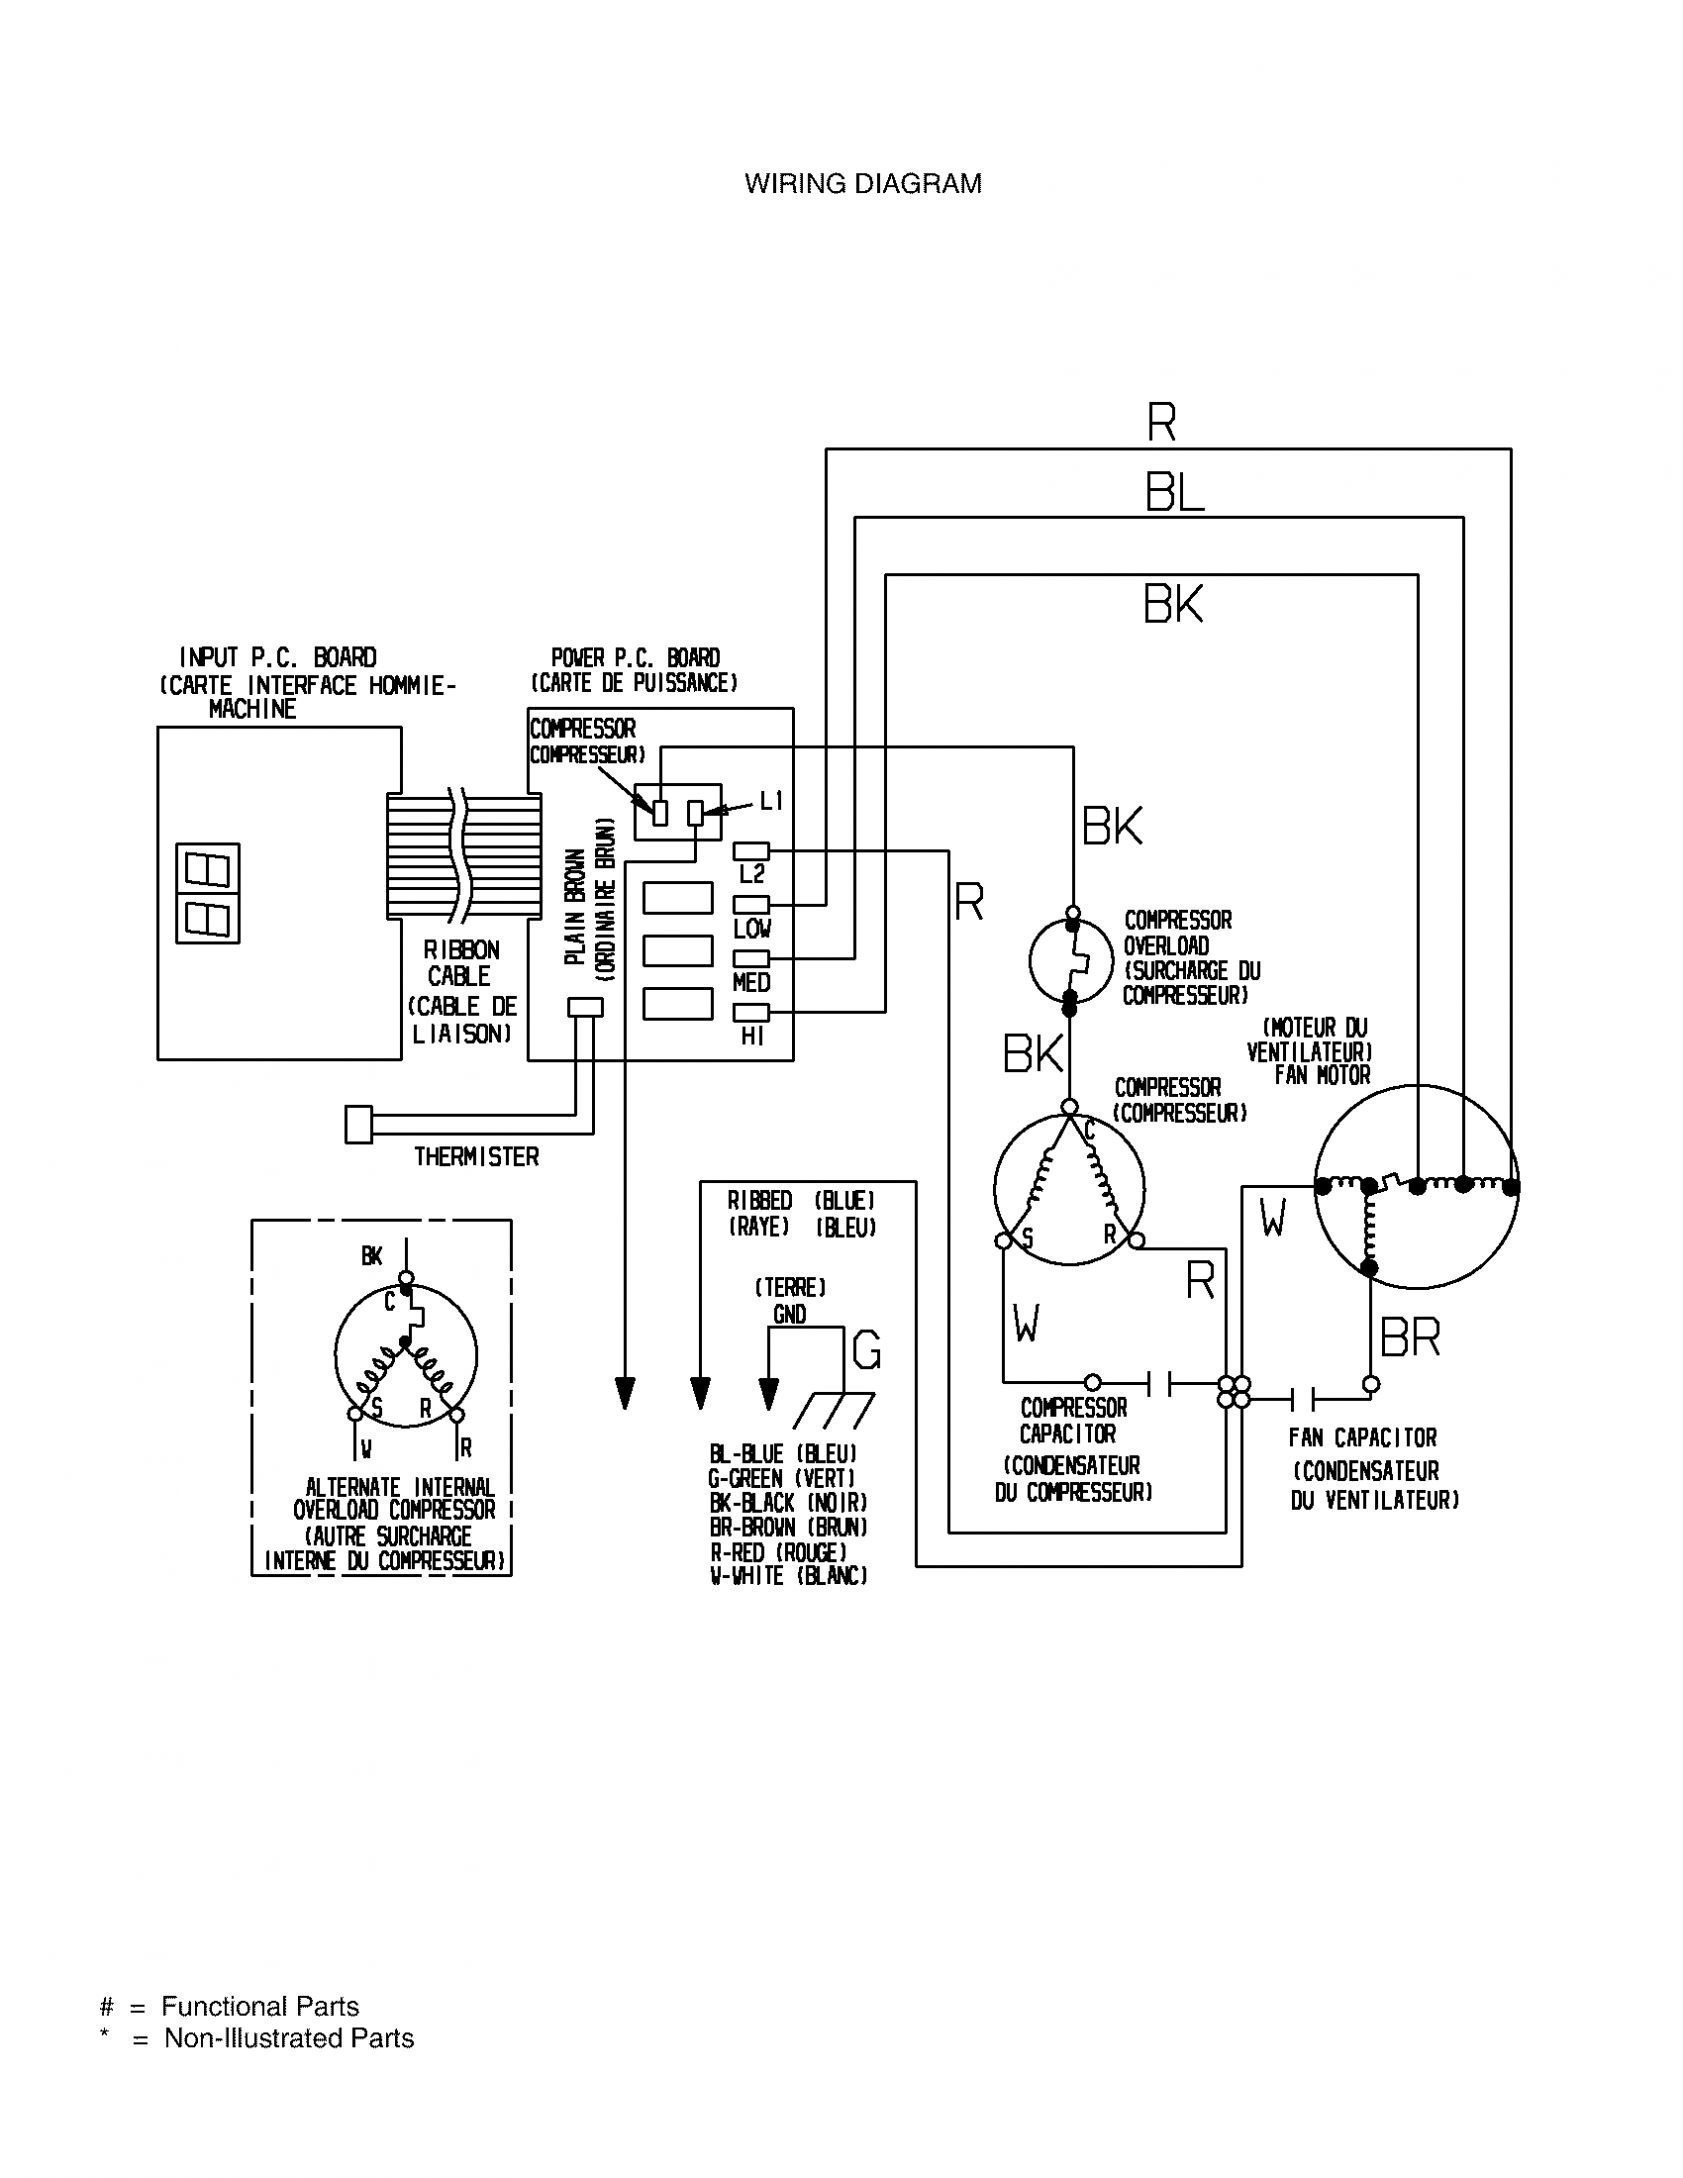 Awesome Wiring Diagram Trane Xl1400 Wiring Diagram Schema Ac Unit Wiring Wiring Cloud Oideiuggs Outletorg